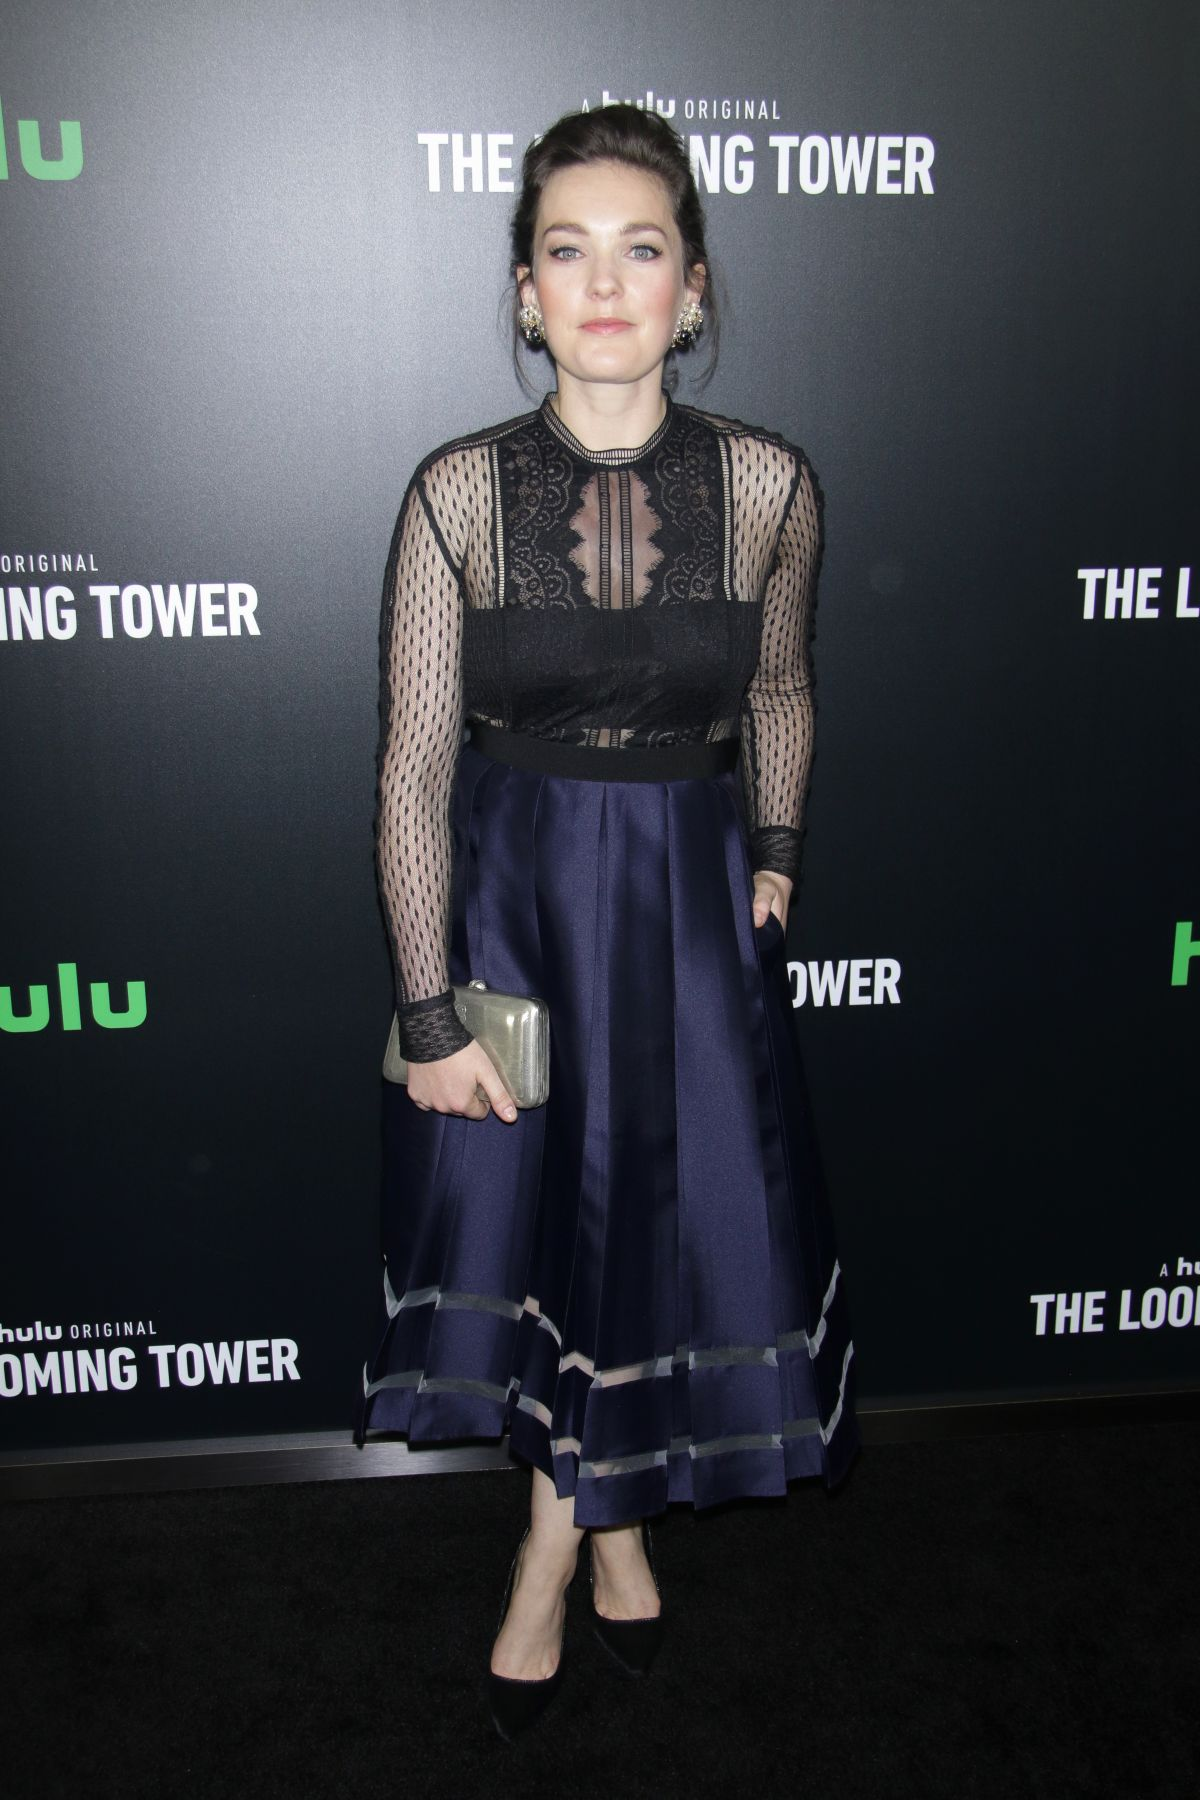 looming tower Drama ella rae peck at an event for the looming tower (2018) jamie  neumann at an event for the looming tower (2018) michael stuhlbarg in the  looming tower.